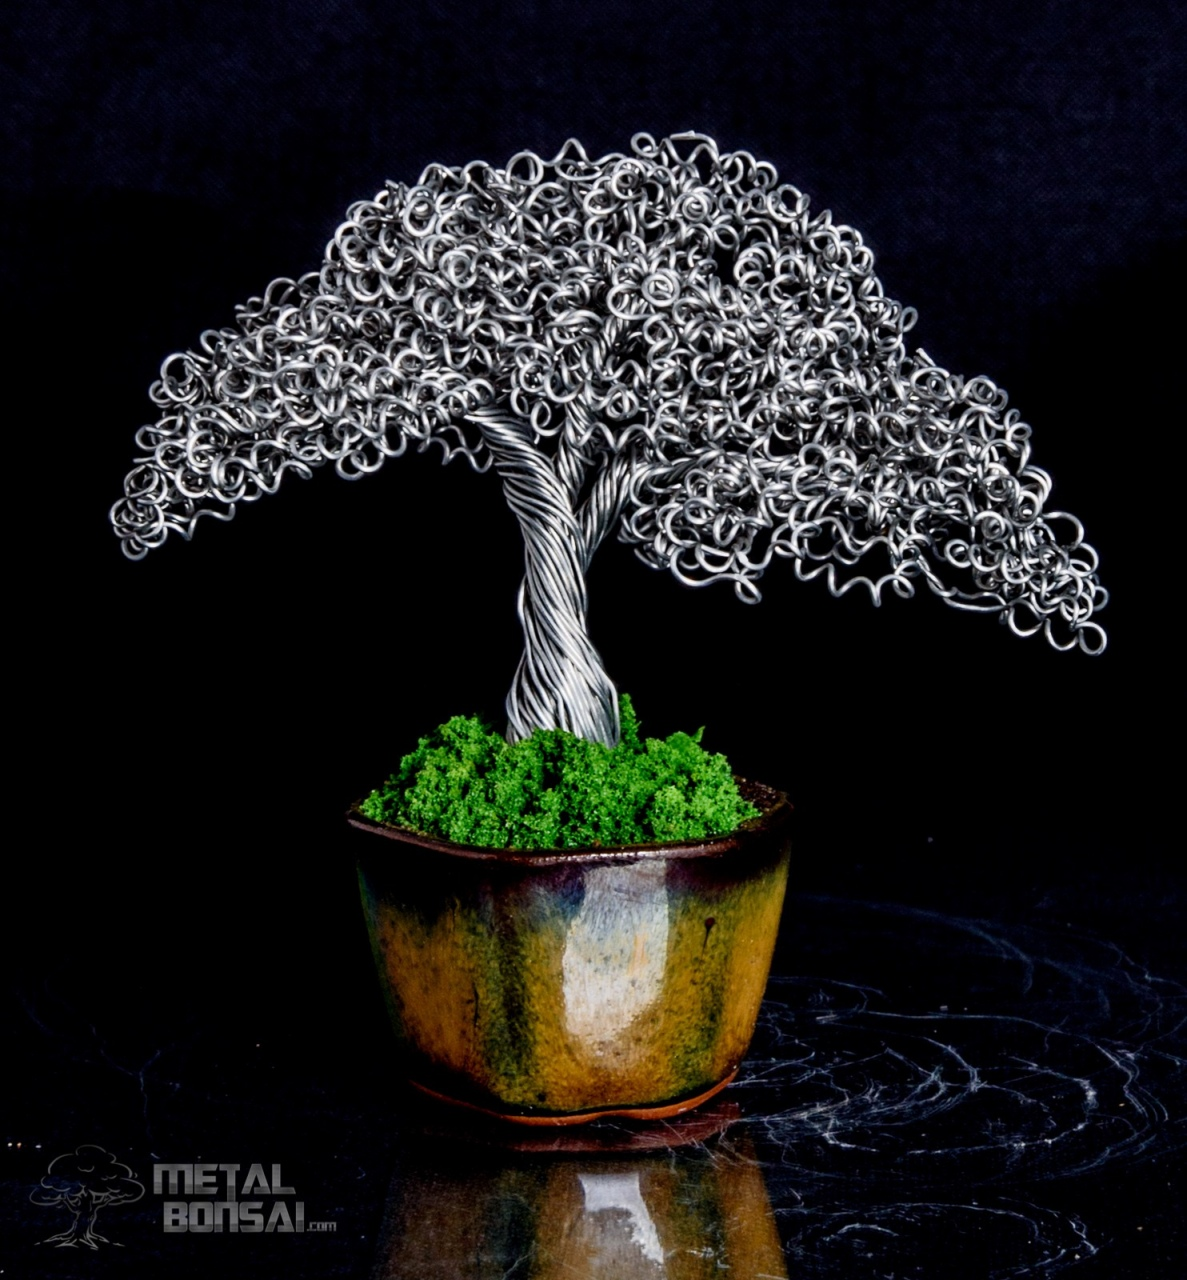 How To Make Wire Bonsai Tree Sculpture Natural Bonsai Wire Tree Sculpture In A Brown Glazed Hexagonal Pot Lorenzo Sculptures How To Make Wire Bonsai Tree Sculpture